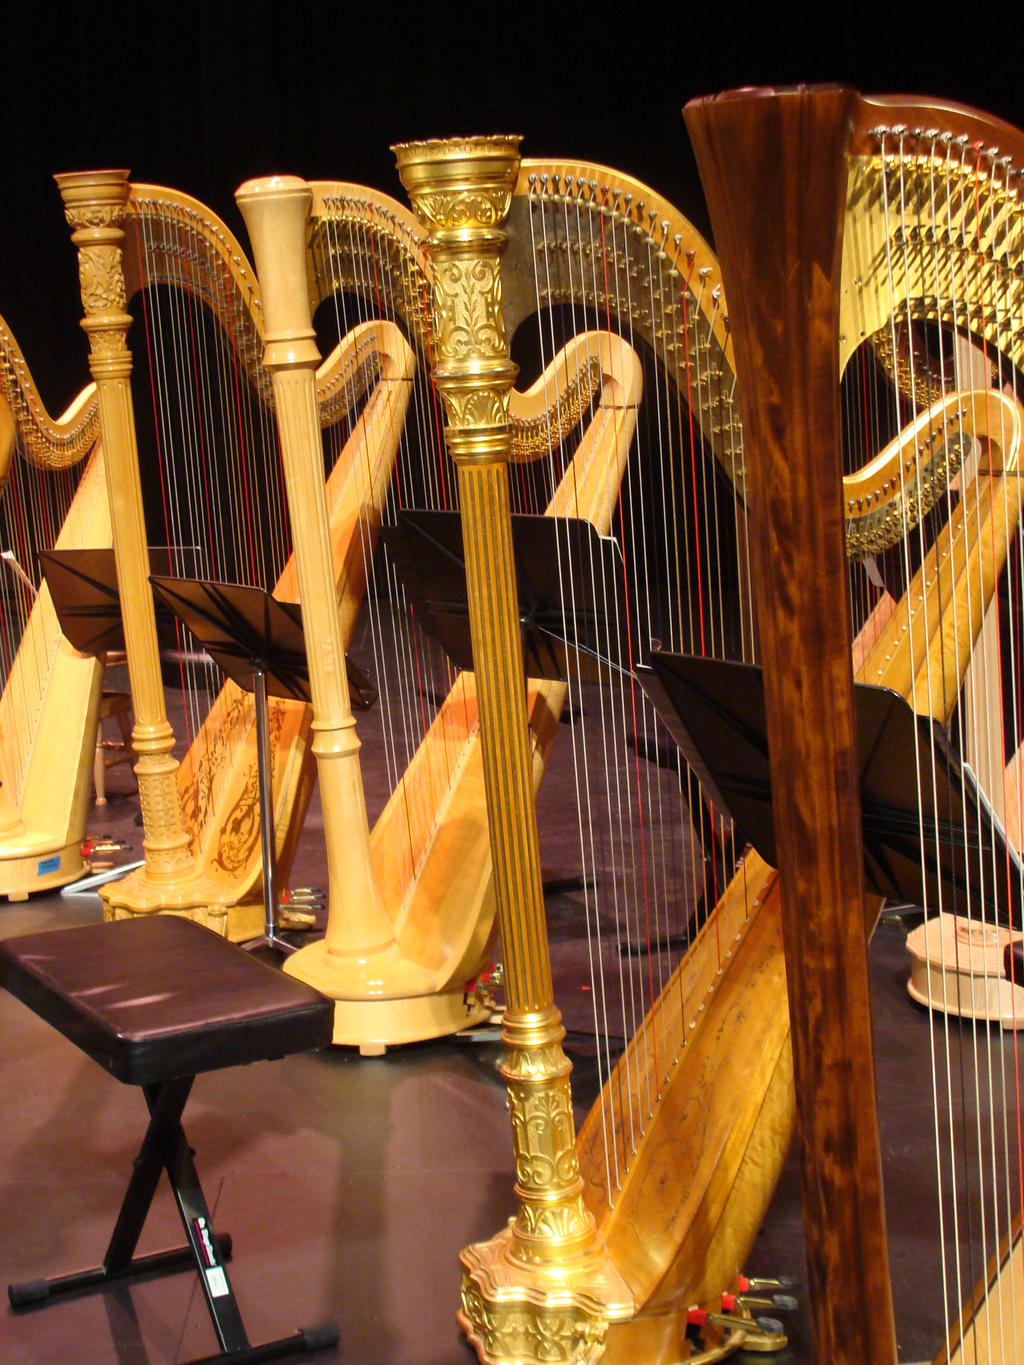 A Forest of Harps: ladies in waiting by JWA2277